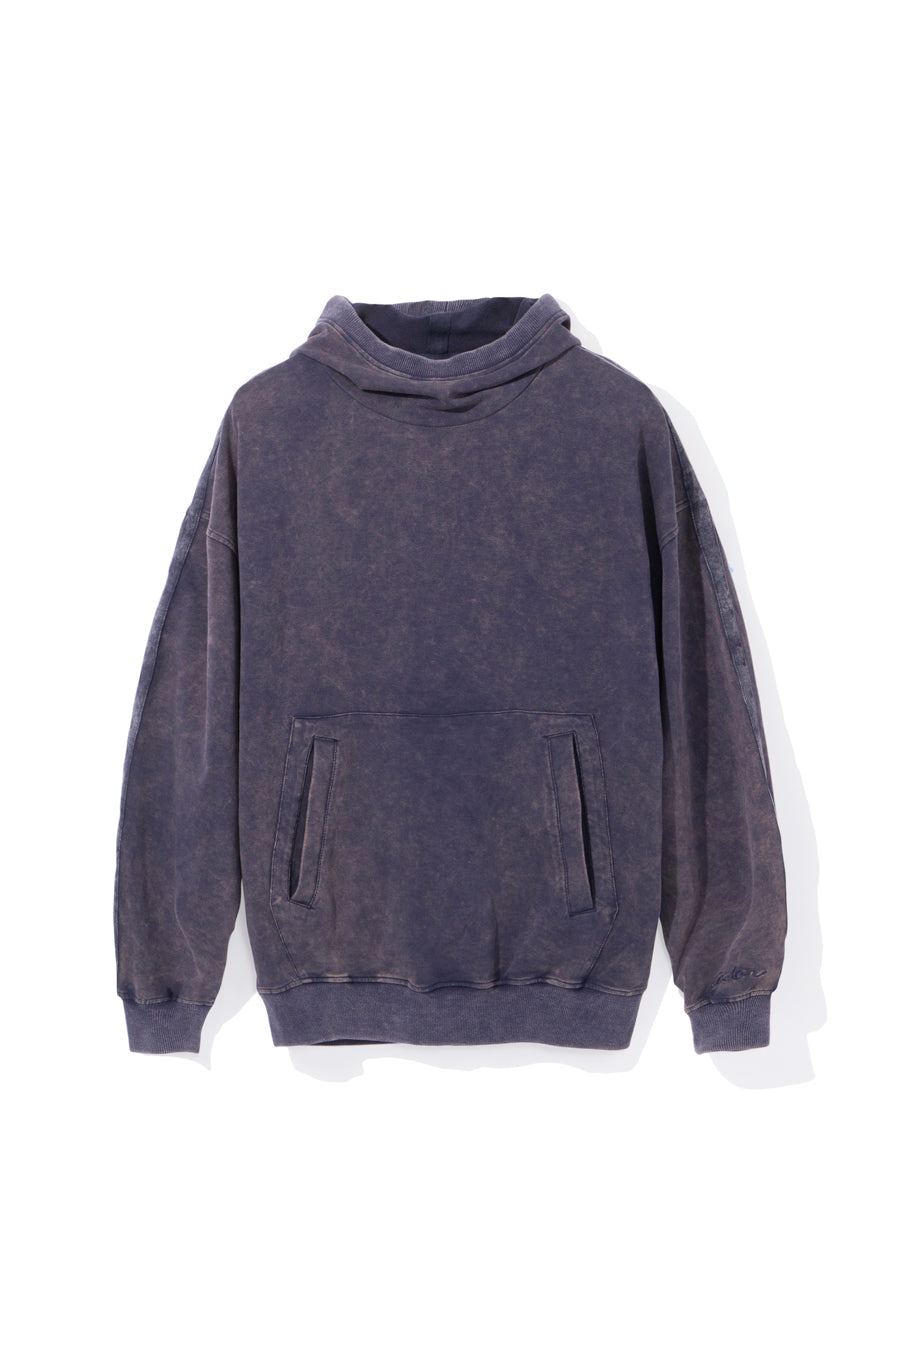 candorofficial - Washed Hoodie, Blue - Sweatshirts